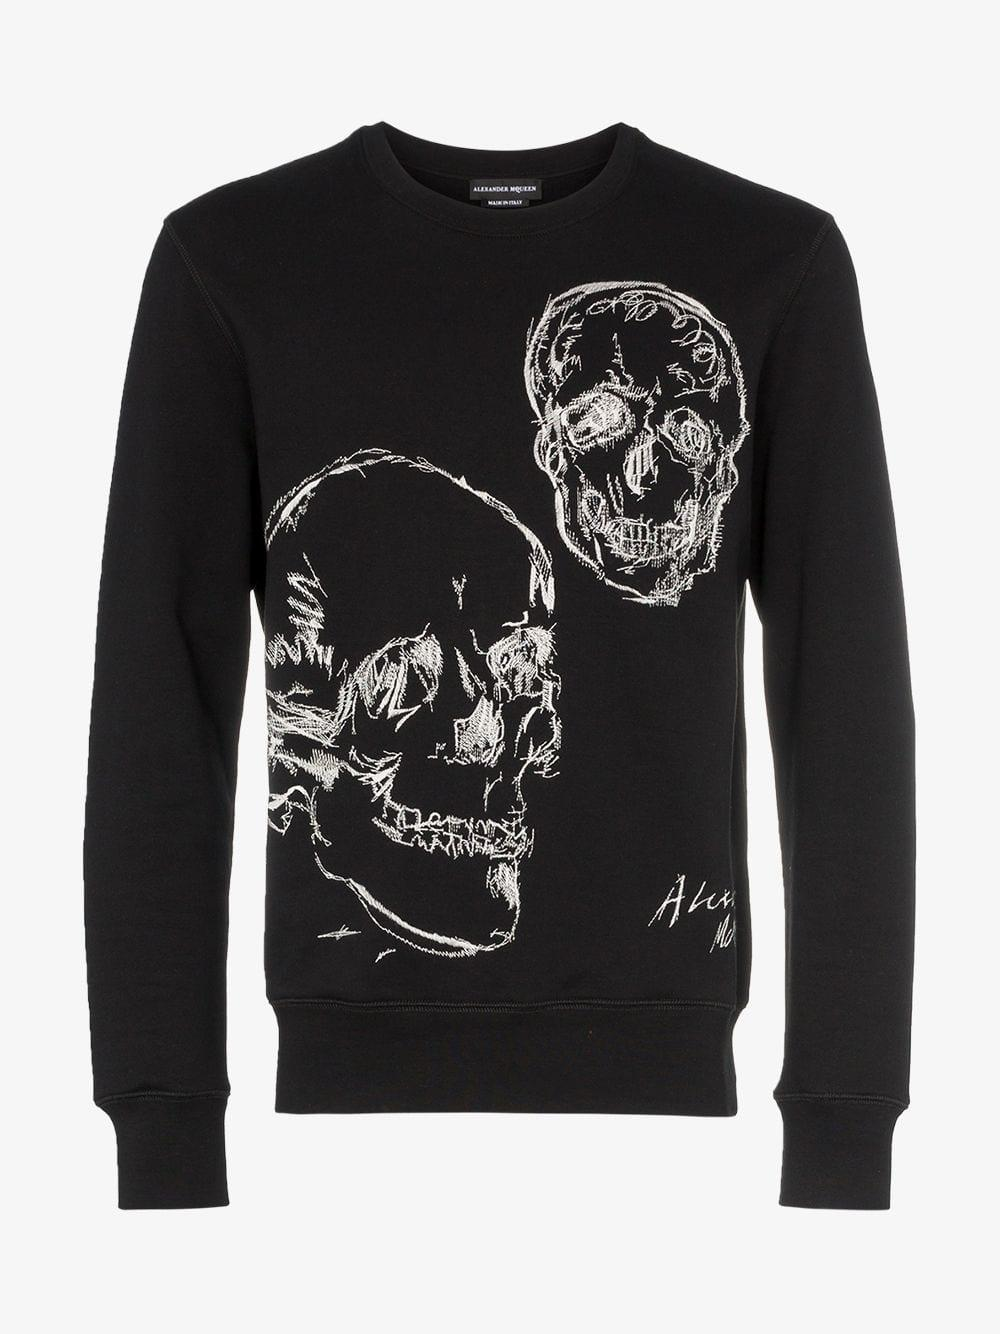 3b1918ba769 alexander-mcqueen-0901-black-Embroidered-Skull-Motif-Cotton-And-Wool-Sweater.jpeg